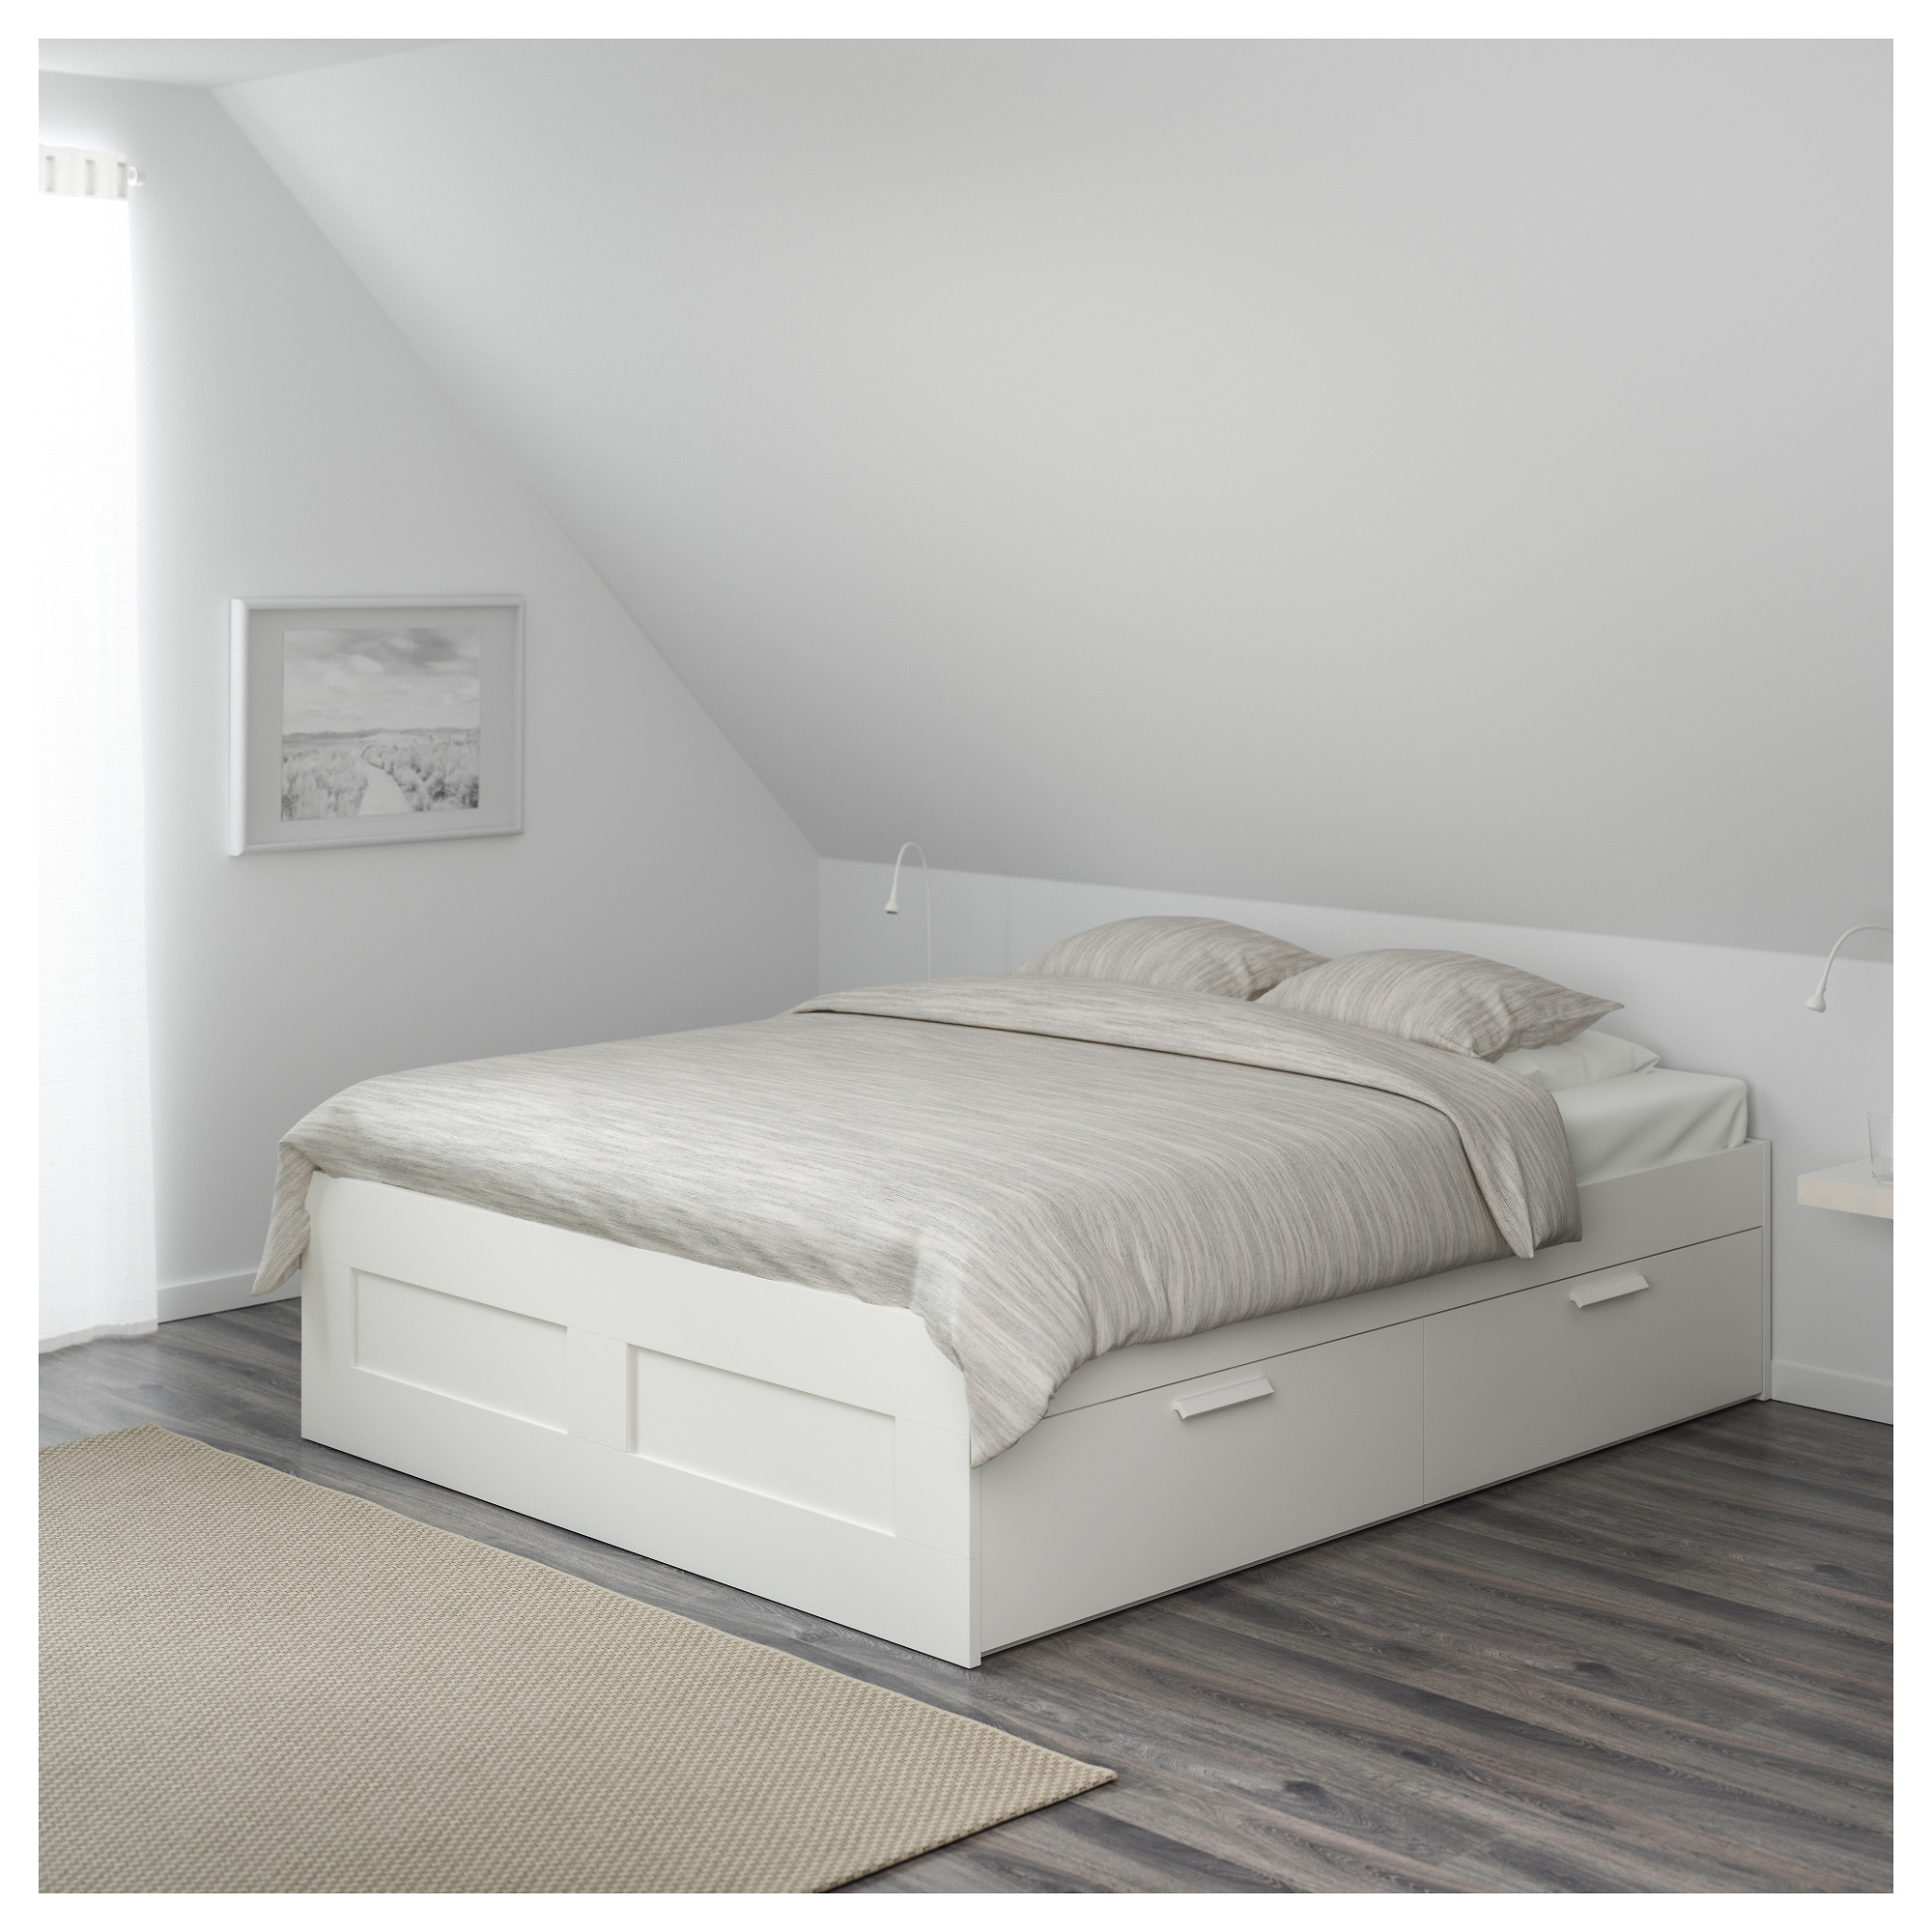 Brimnes Bed Frame With Storage 140x200 Cm White Ikea